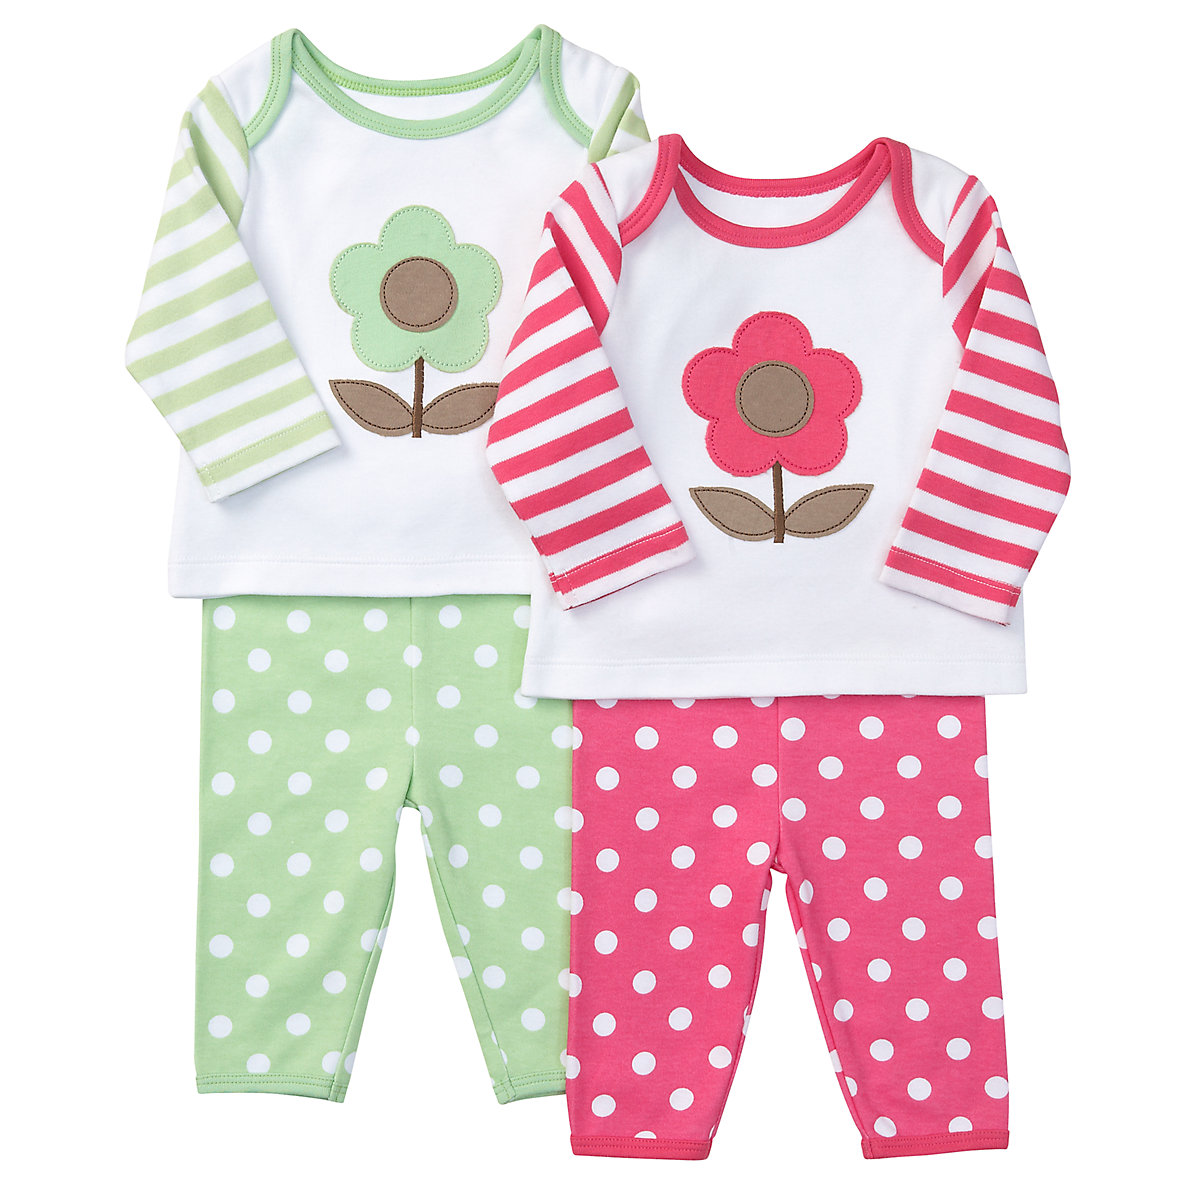 2 pack girls bright spot PJ